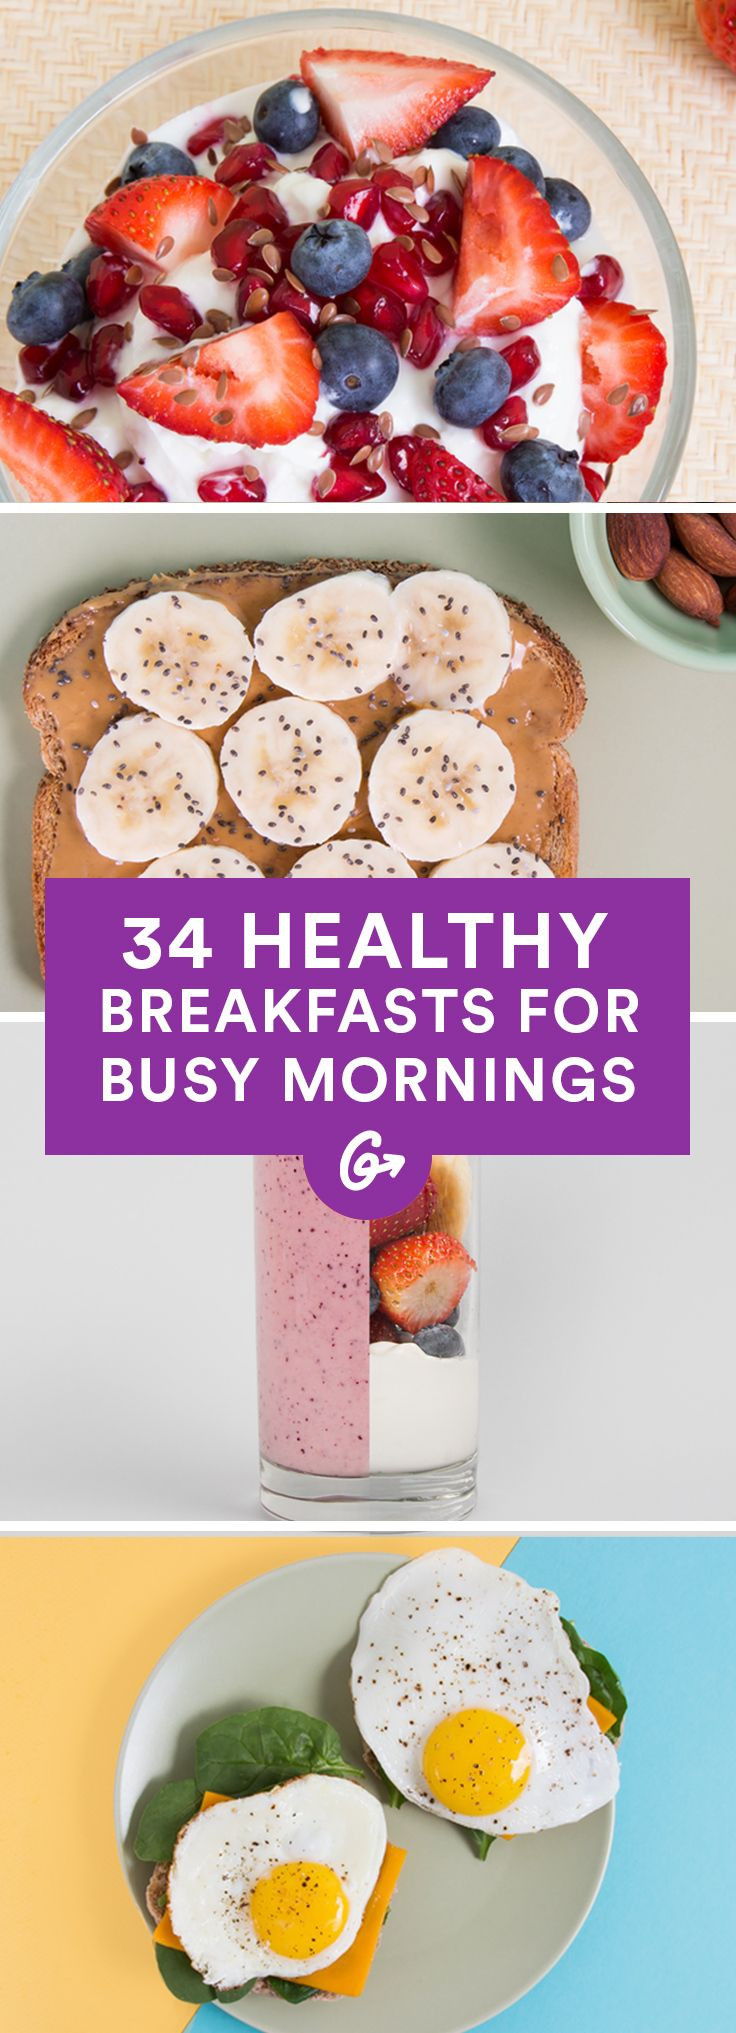 Healthy Fast Food Breakfast  39 Healthy Breakfasts for Busy Mornings